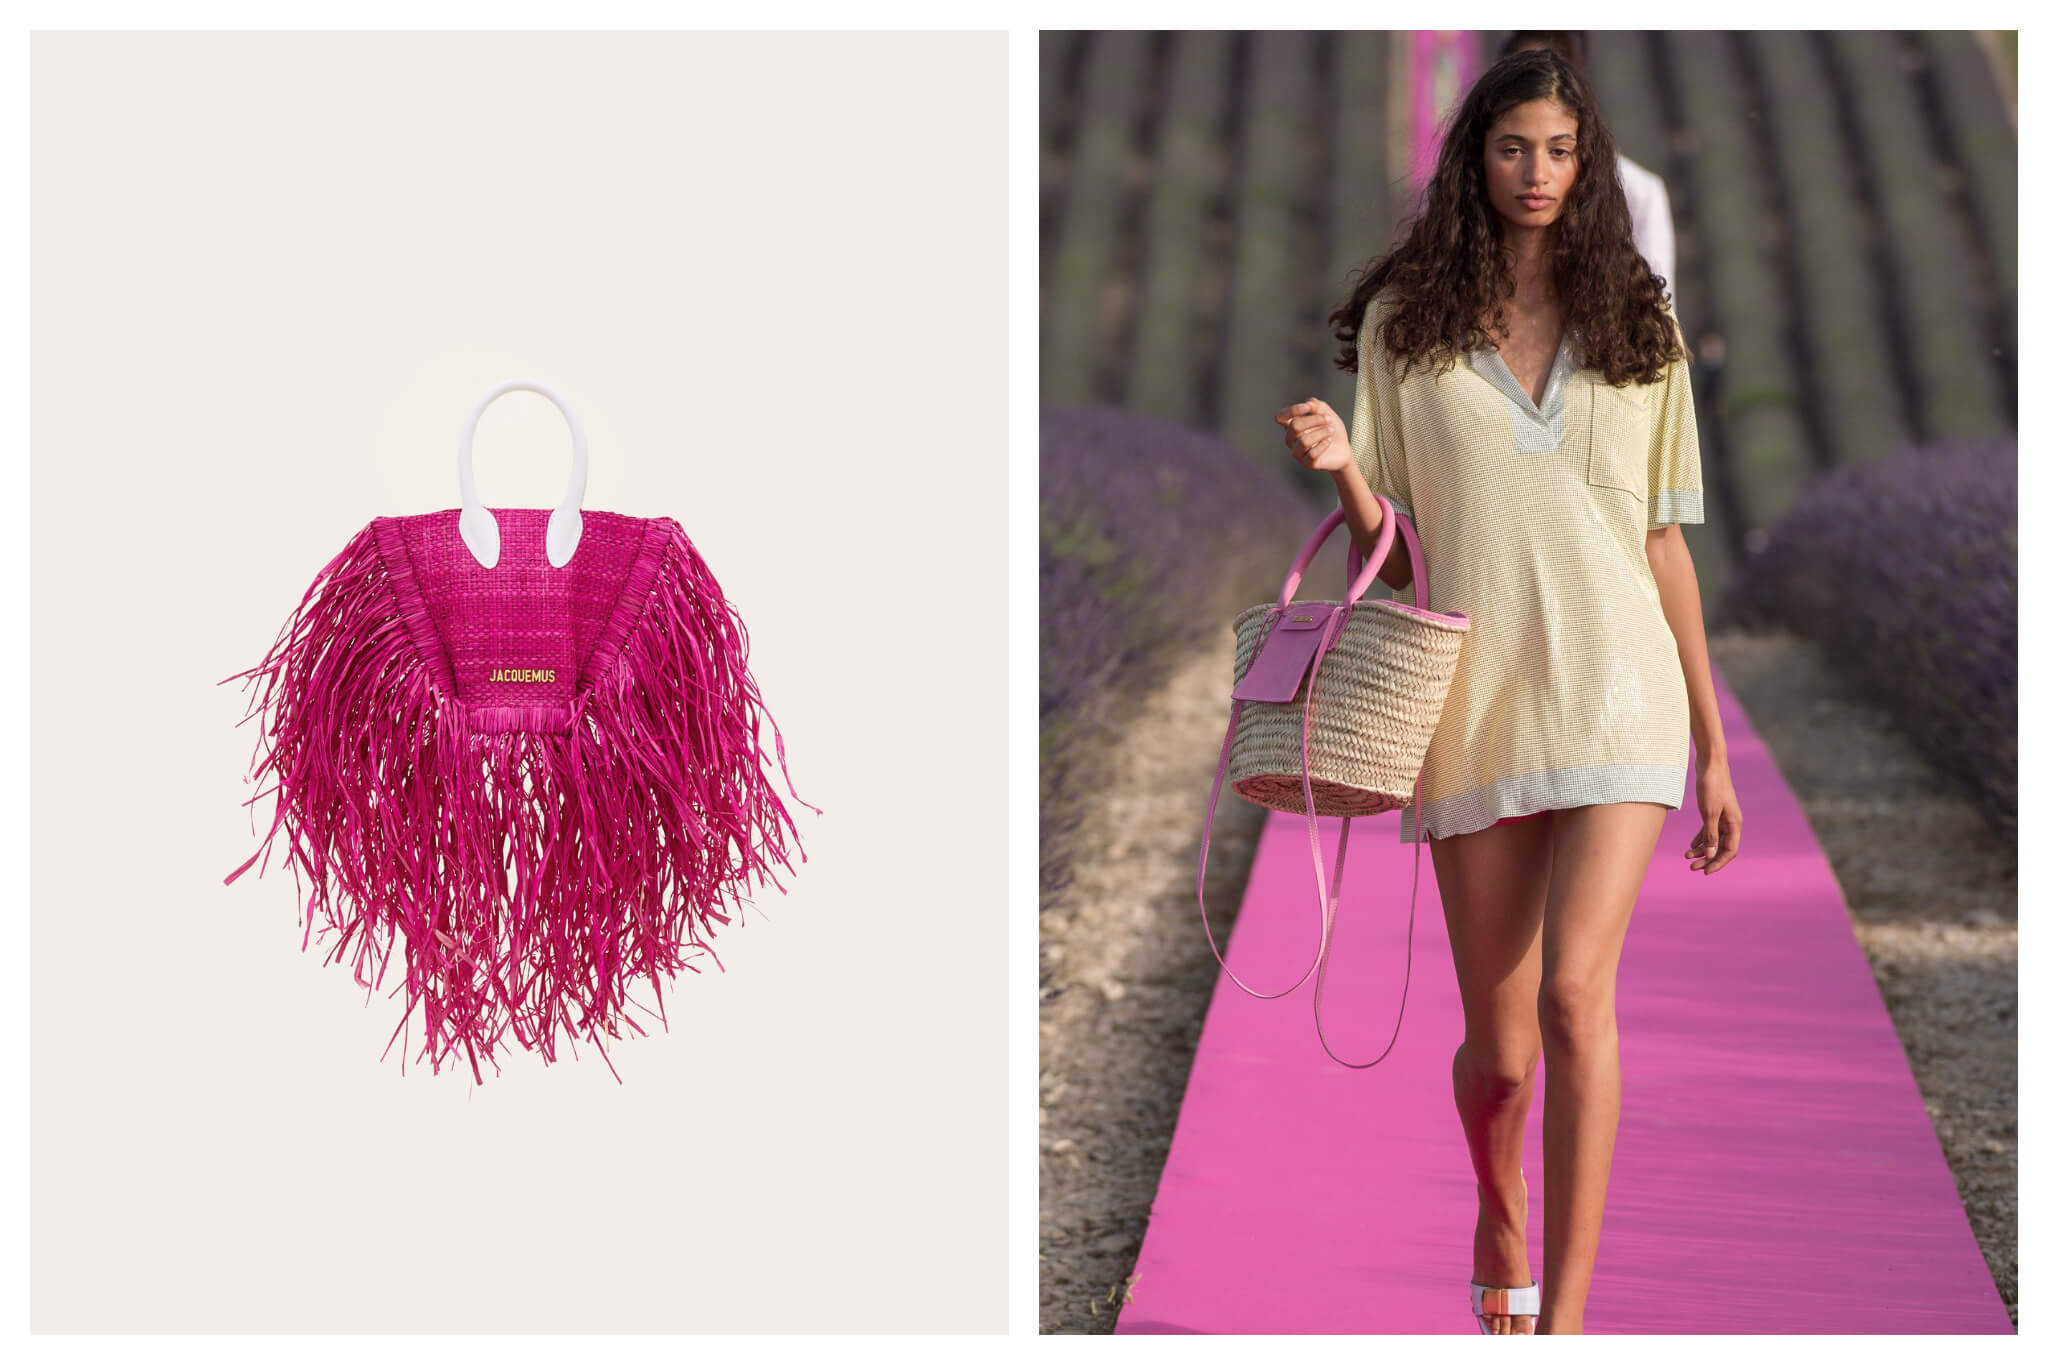 Left: A hot pink hand bag, with long tassels and a white handle from Jacquemus, Right: A woman in an oversized polo shirt walks down a pink runway through a lavender field during a fashion show for Jacquemus. She holds a wicker bag with pink detailing from the designer.